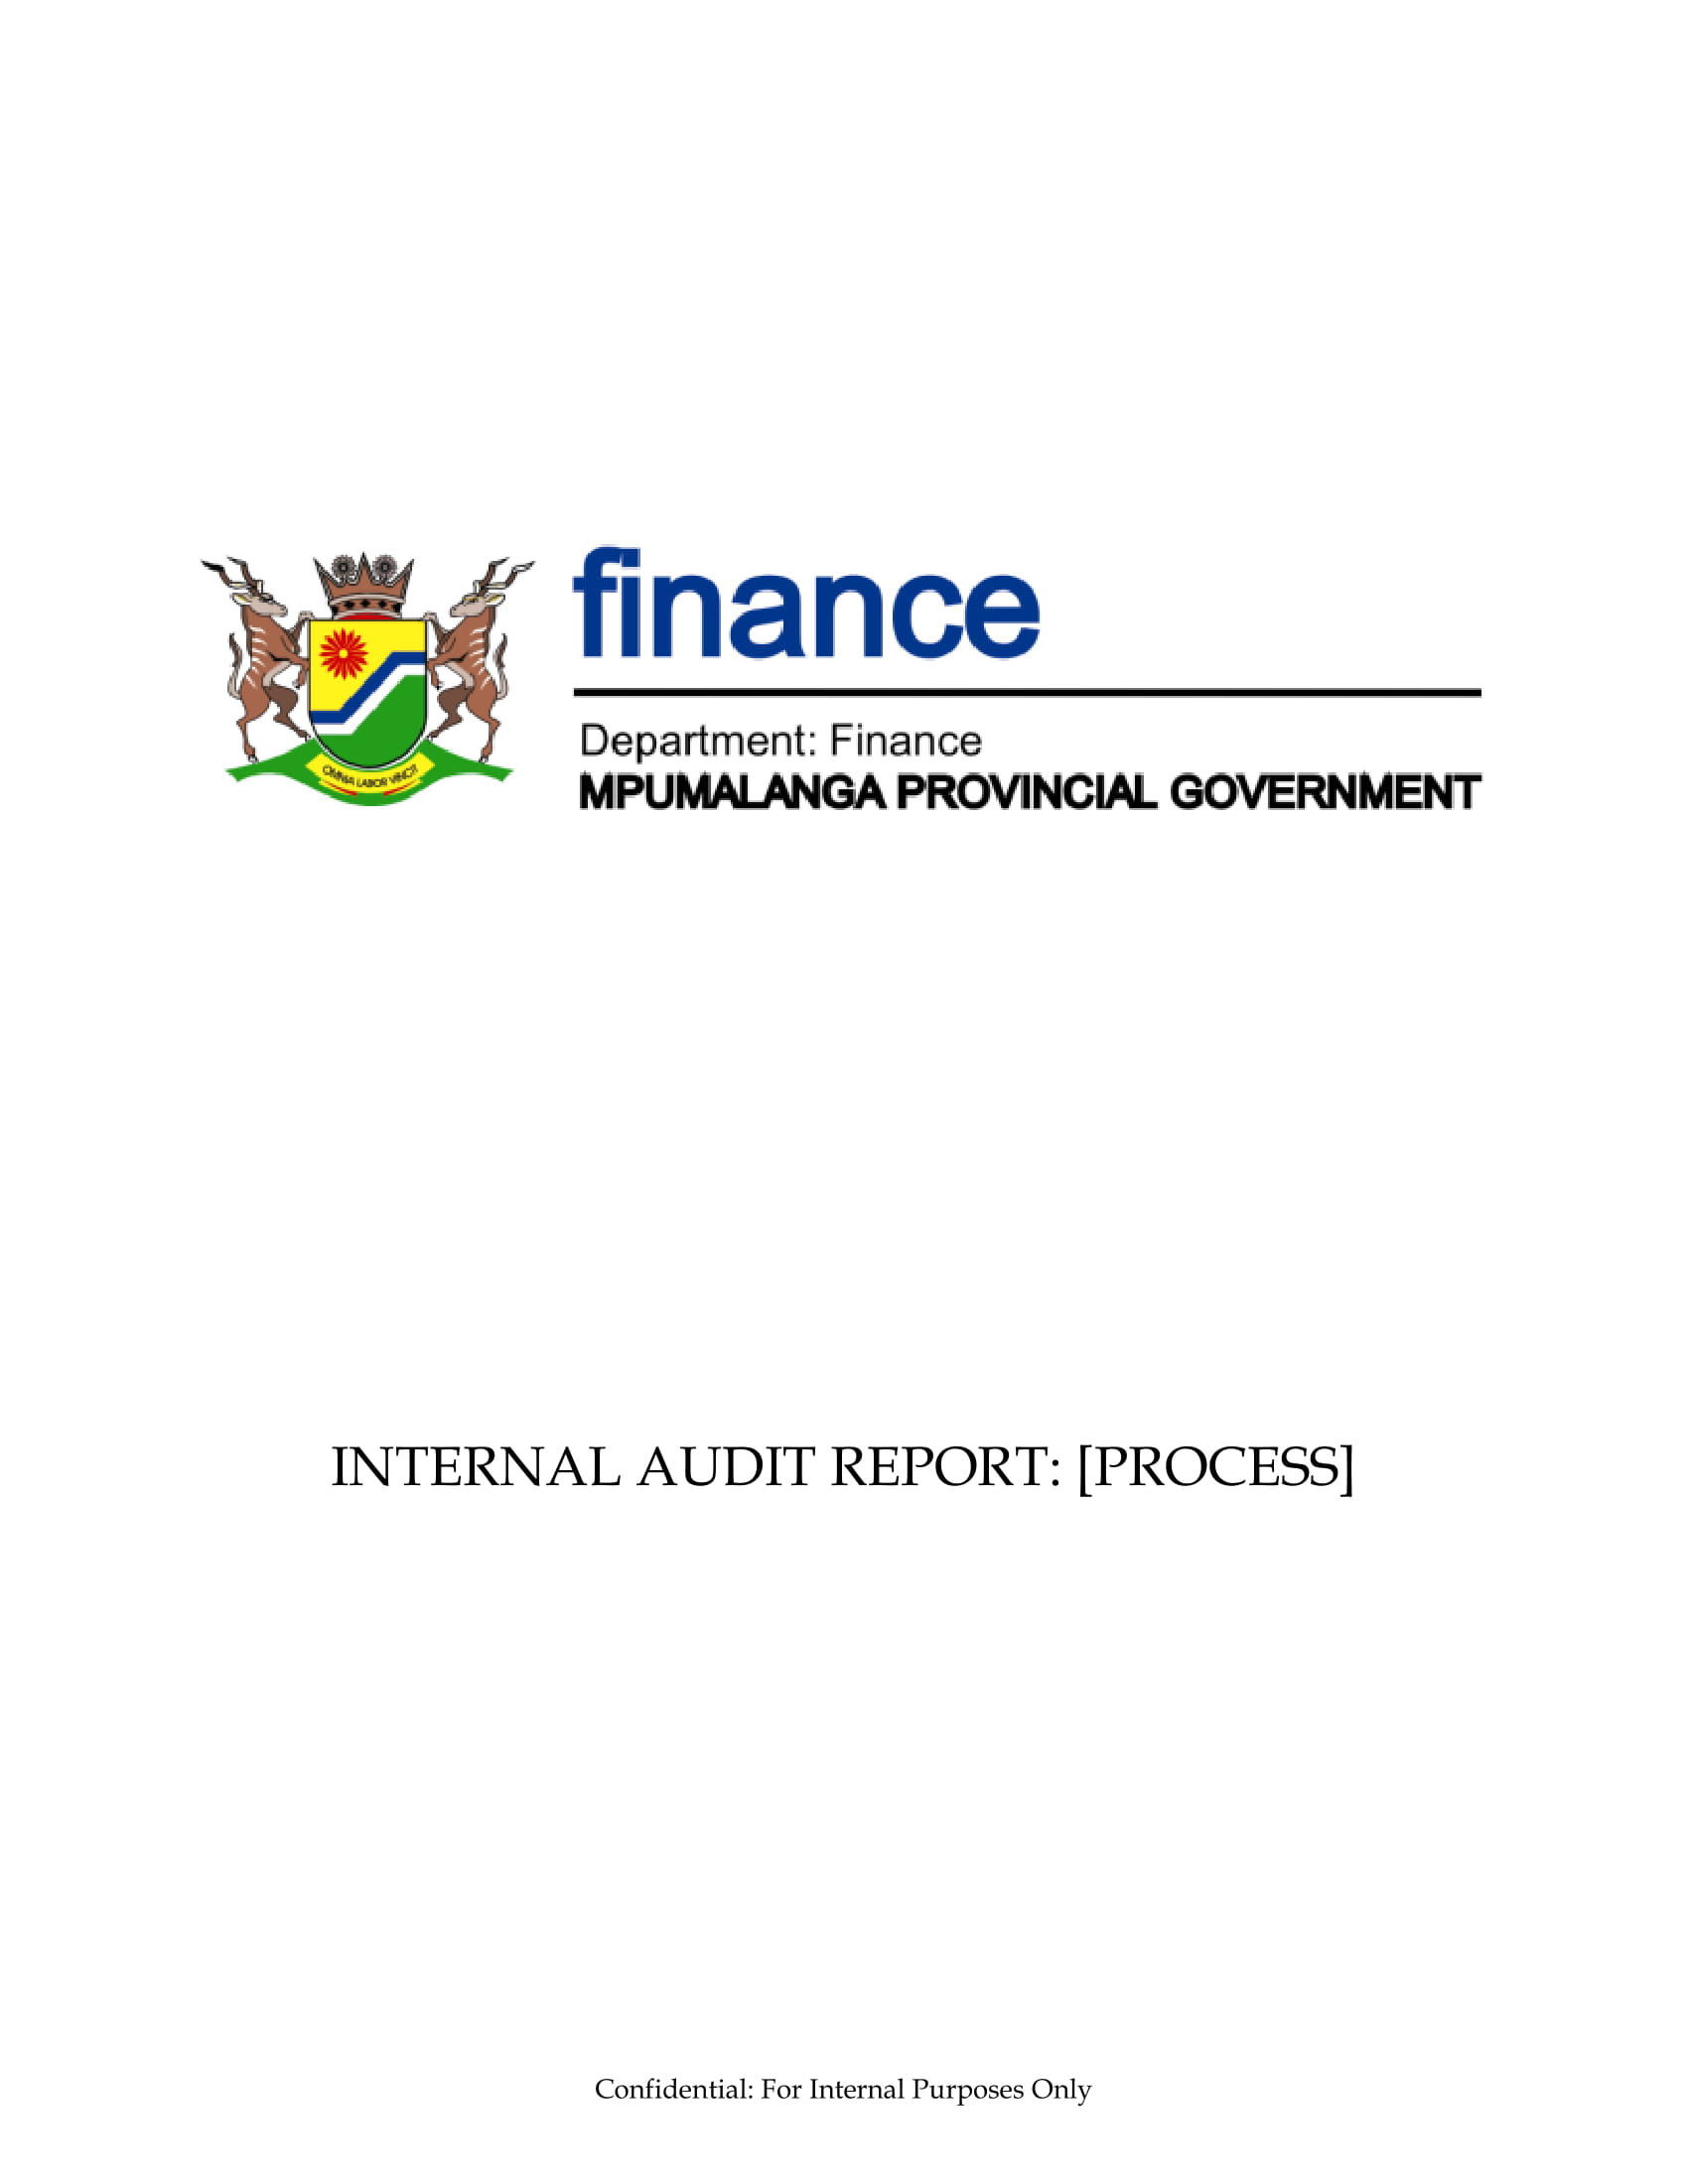 internal audit report process example 1